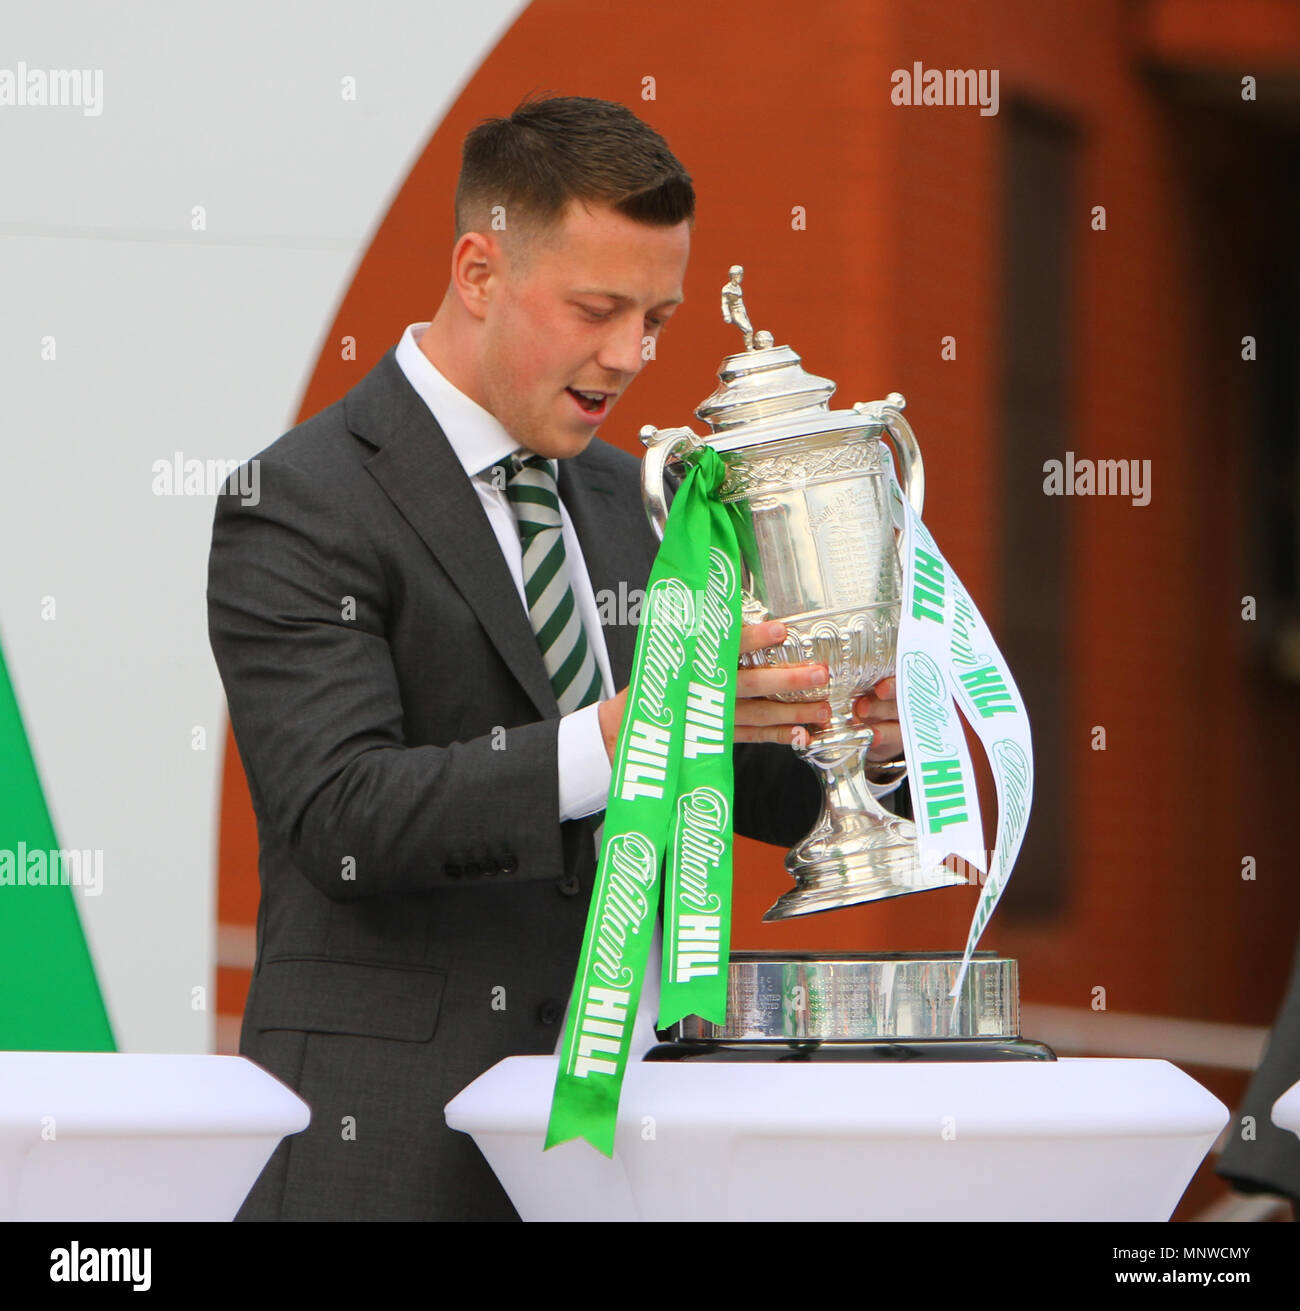 Hampden Park, Glasgow, UK. 19th May, 2018. Scottish Cup football final, Celtic versus Motherwell; Callum McGregor brings up the Scottish cup Credit: Action Plus Sports/Alamy Live News - Stock Image